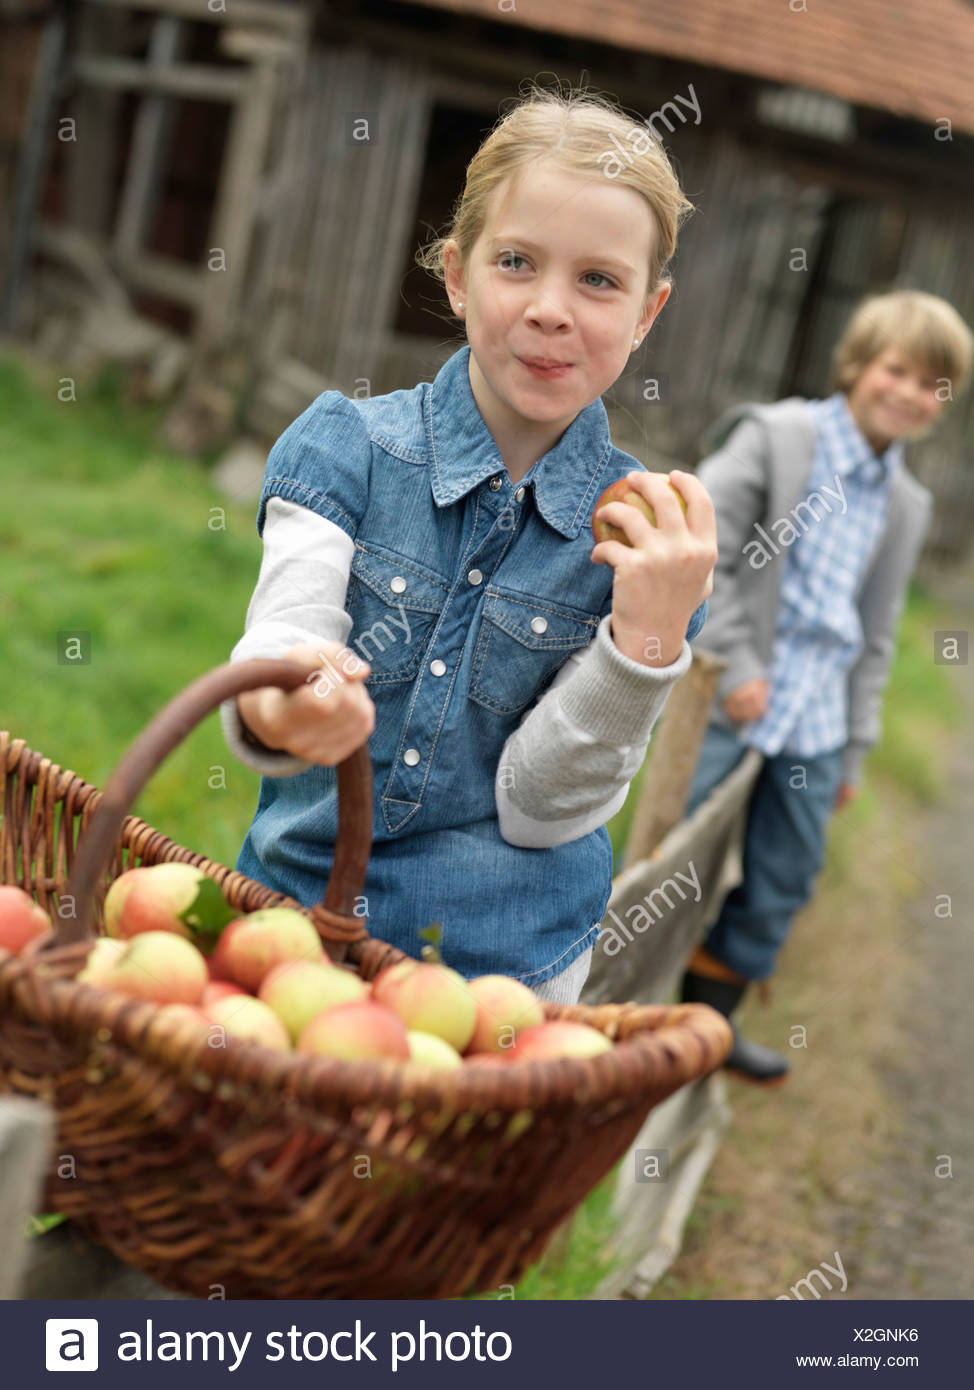 Girl with apple basket eating apples - Stock Image